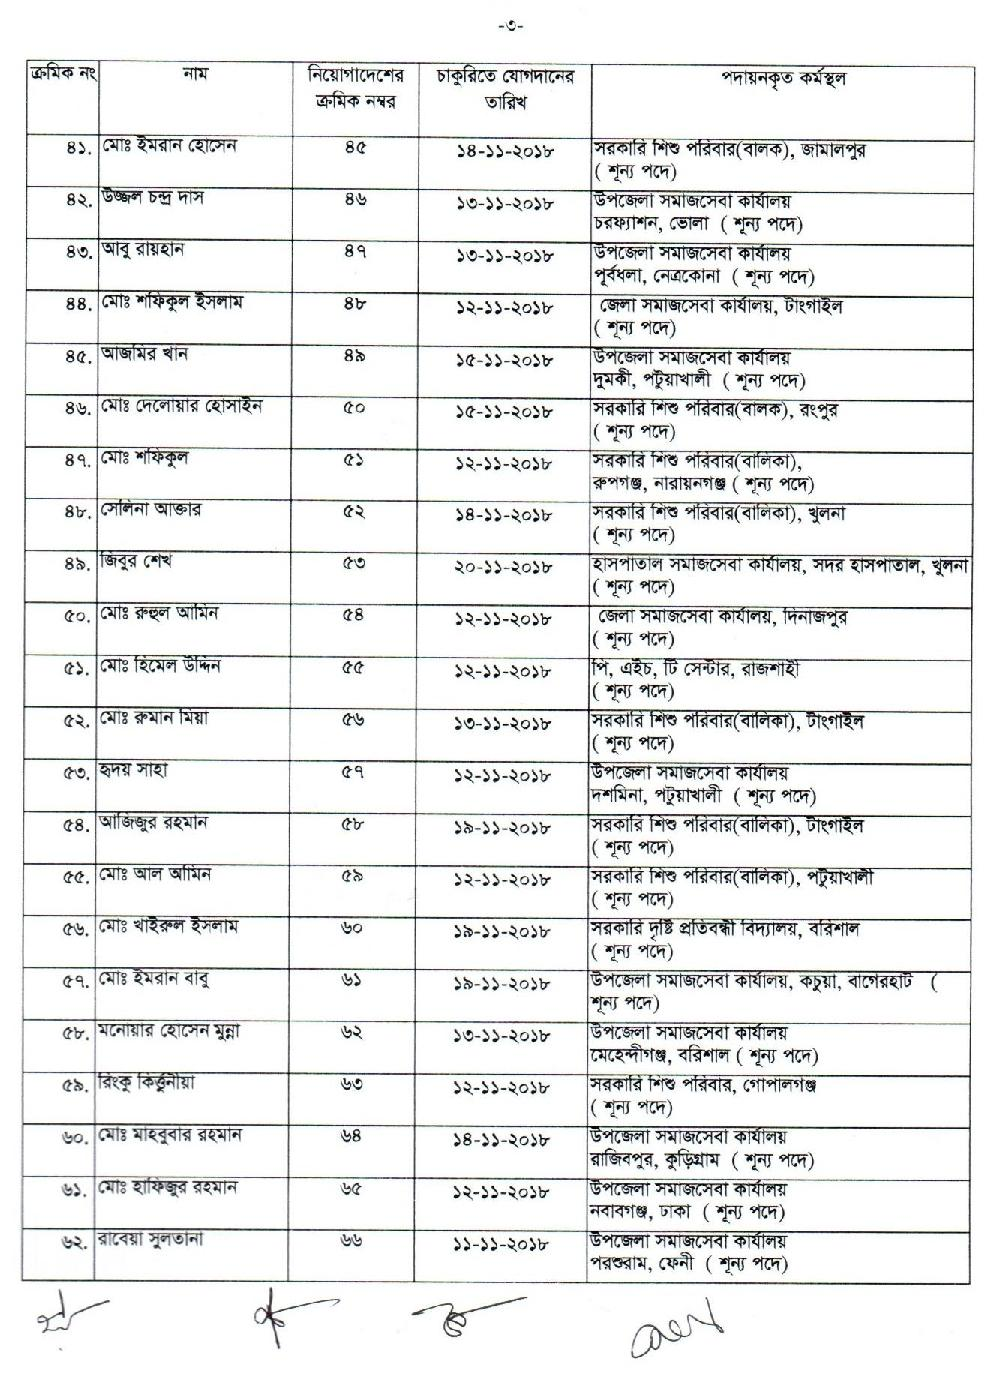 DSS Final Result And Appointment Circular 2018 2